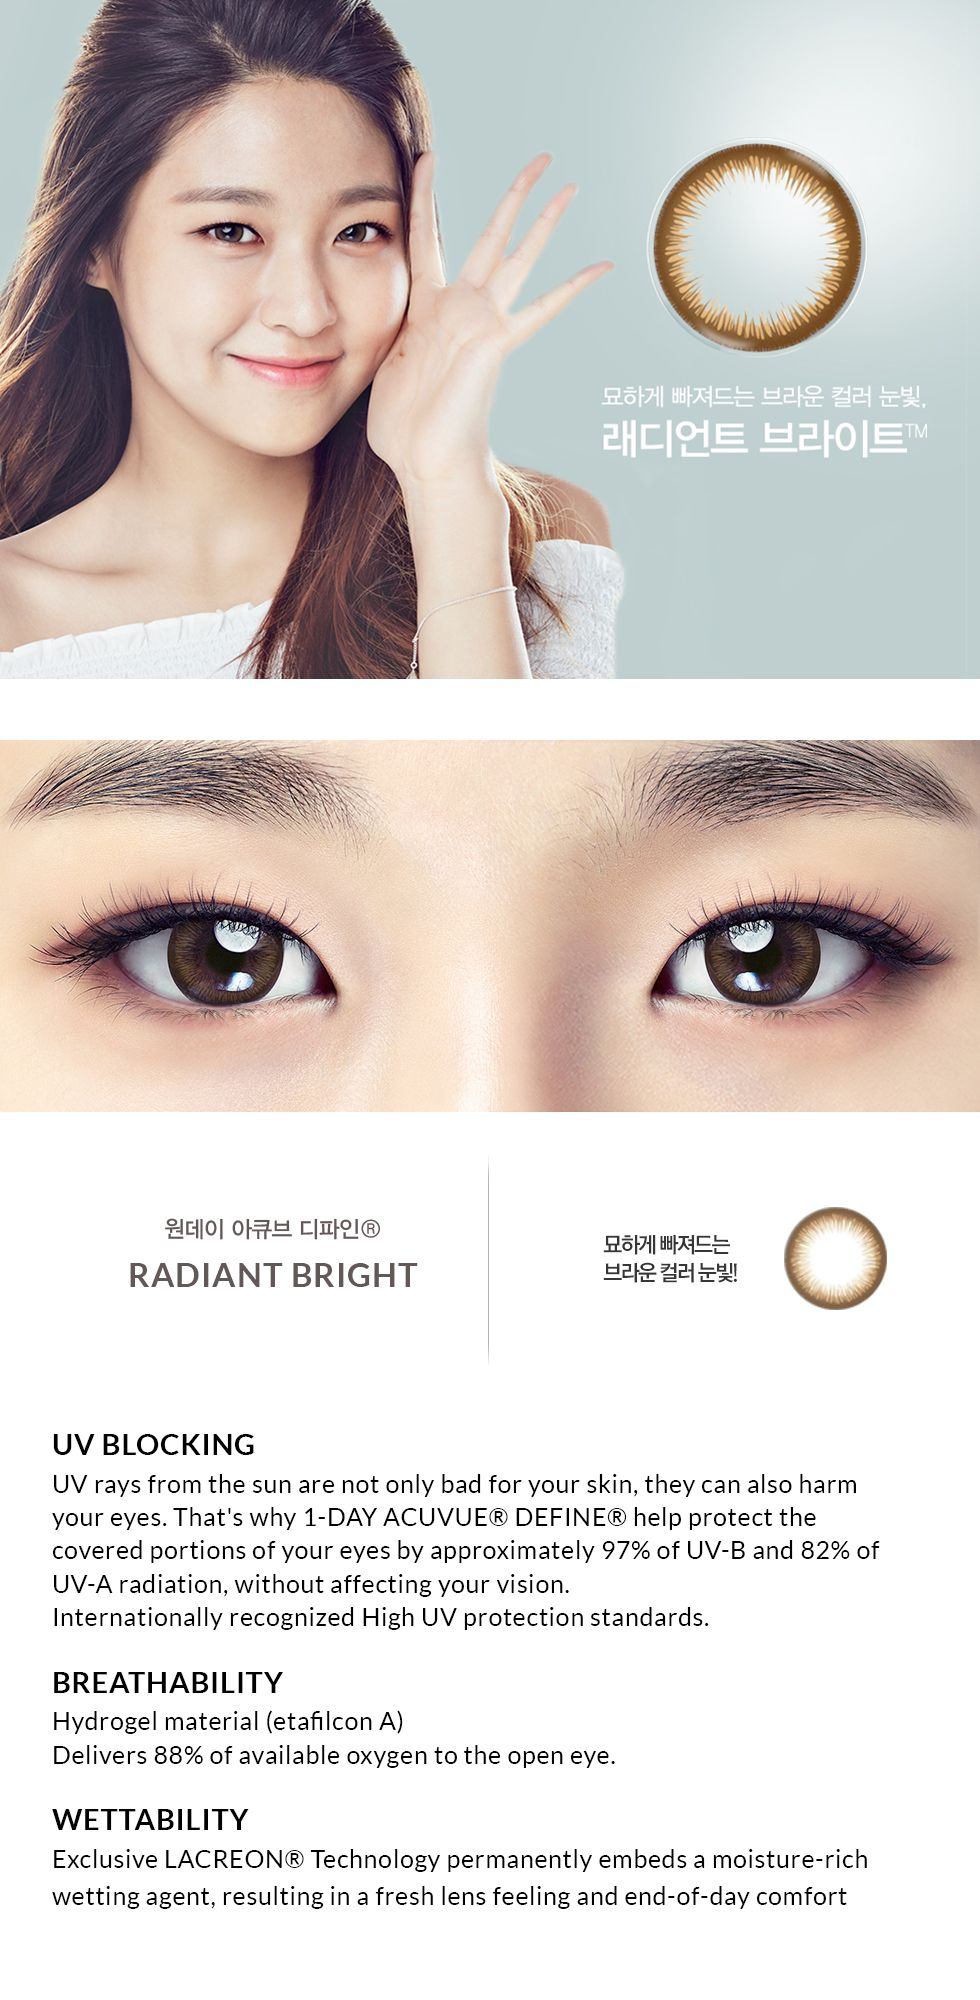 1 day acuvue define radiant bright 30 pcs circle contact 1 day acuvue define radiant bright 30 pcs nvjuhfo Image collections